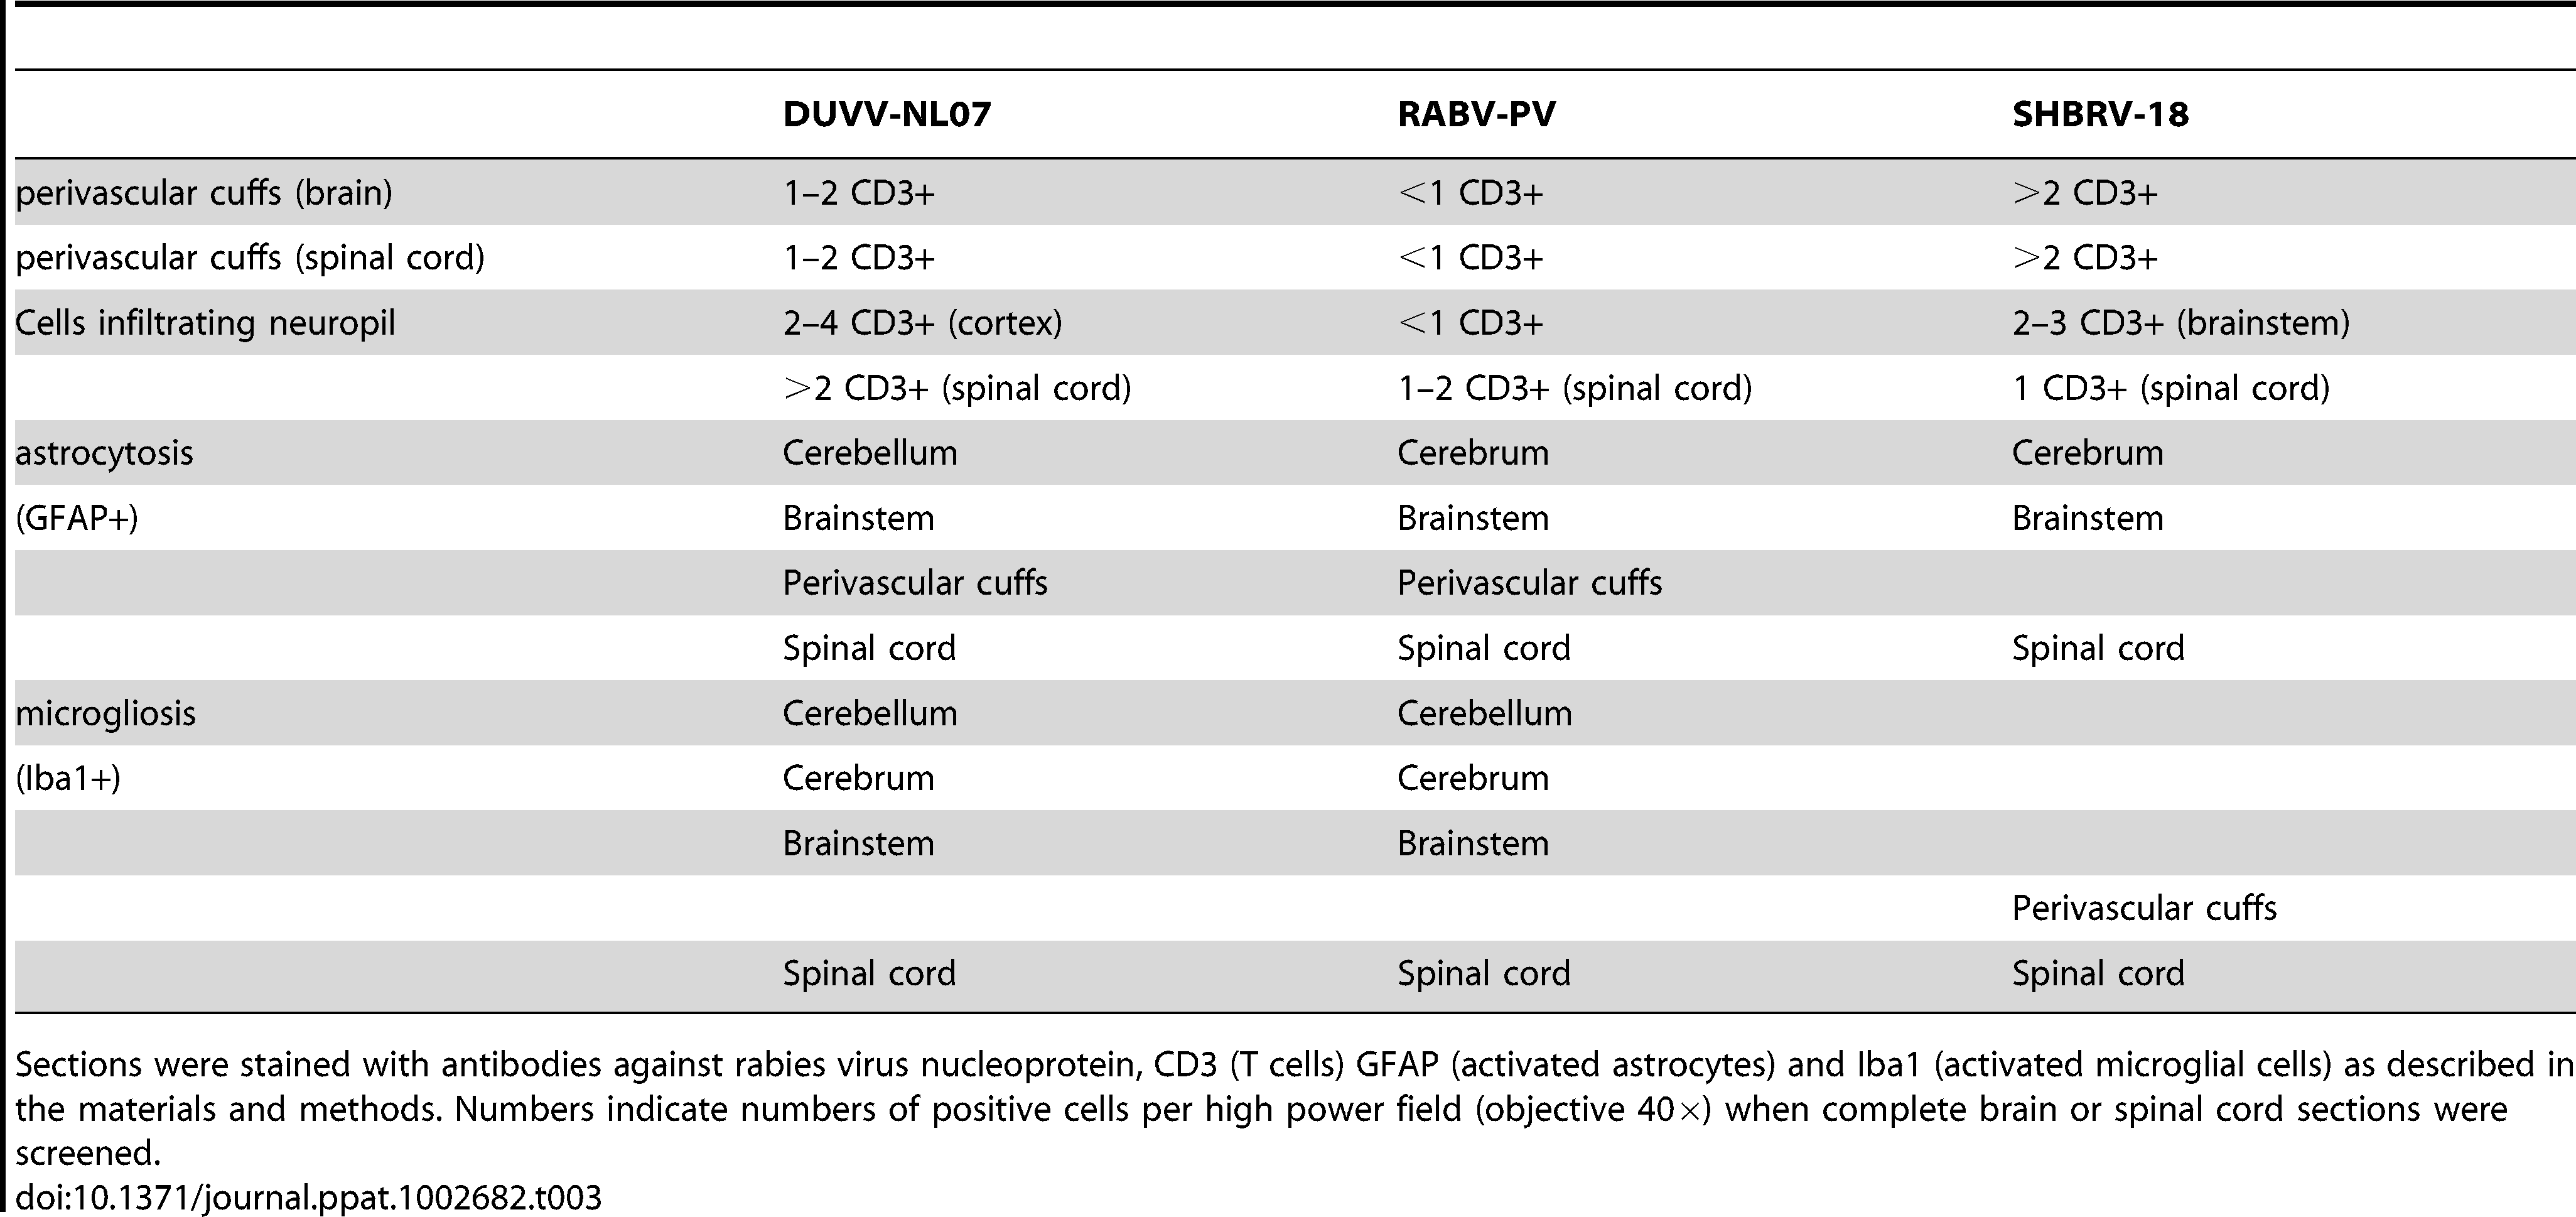 Overview of histopathological changes observed in the brain and spinal cord of animals infected with DUVV-NL07, RABV-PV or SHBRV-18 virus at the time of paralysis.